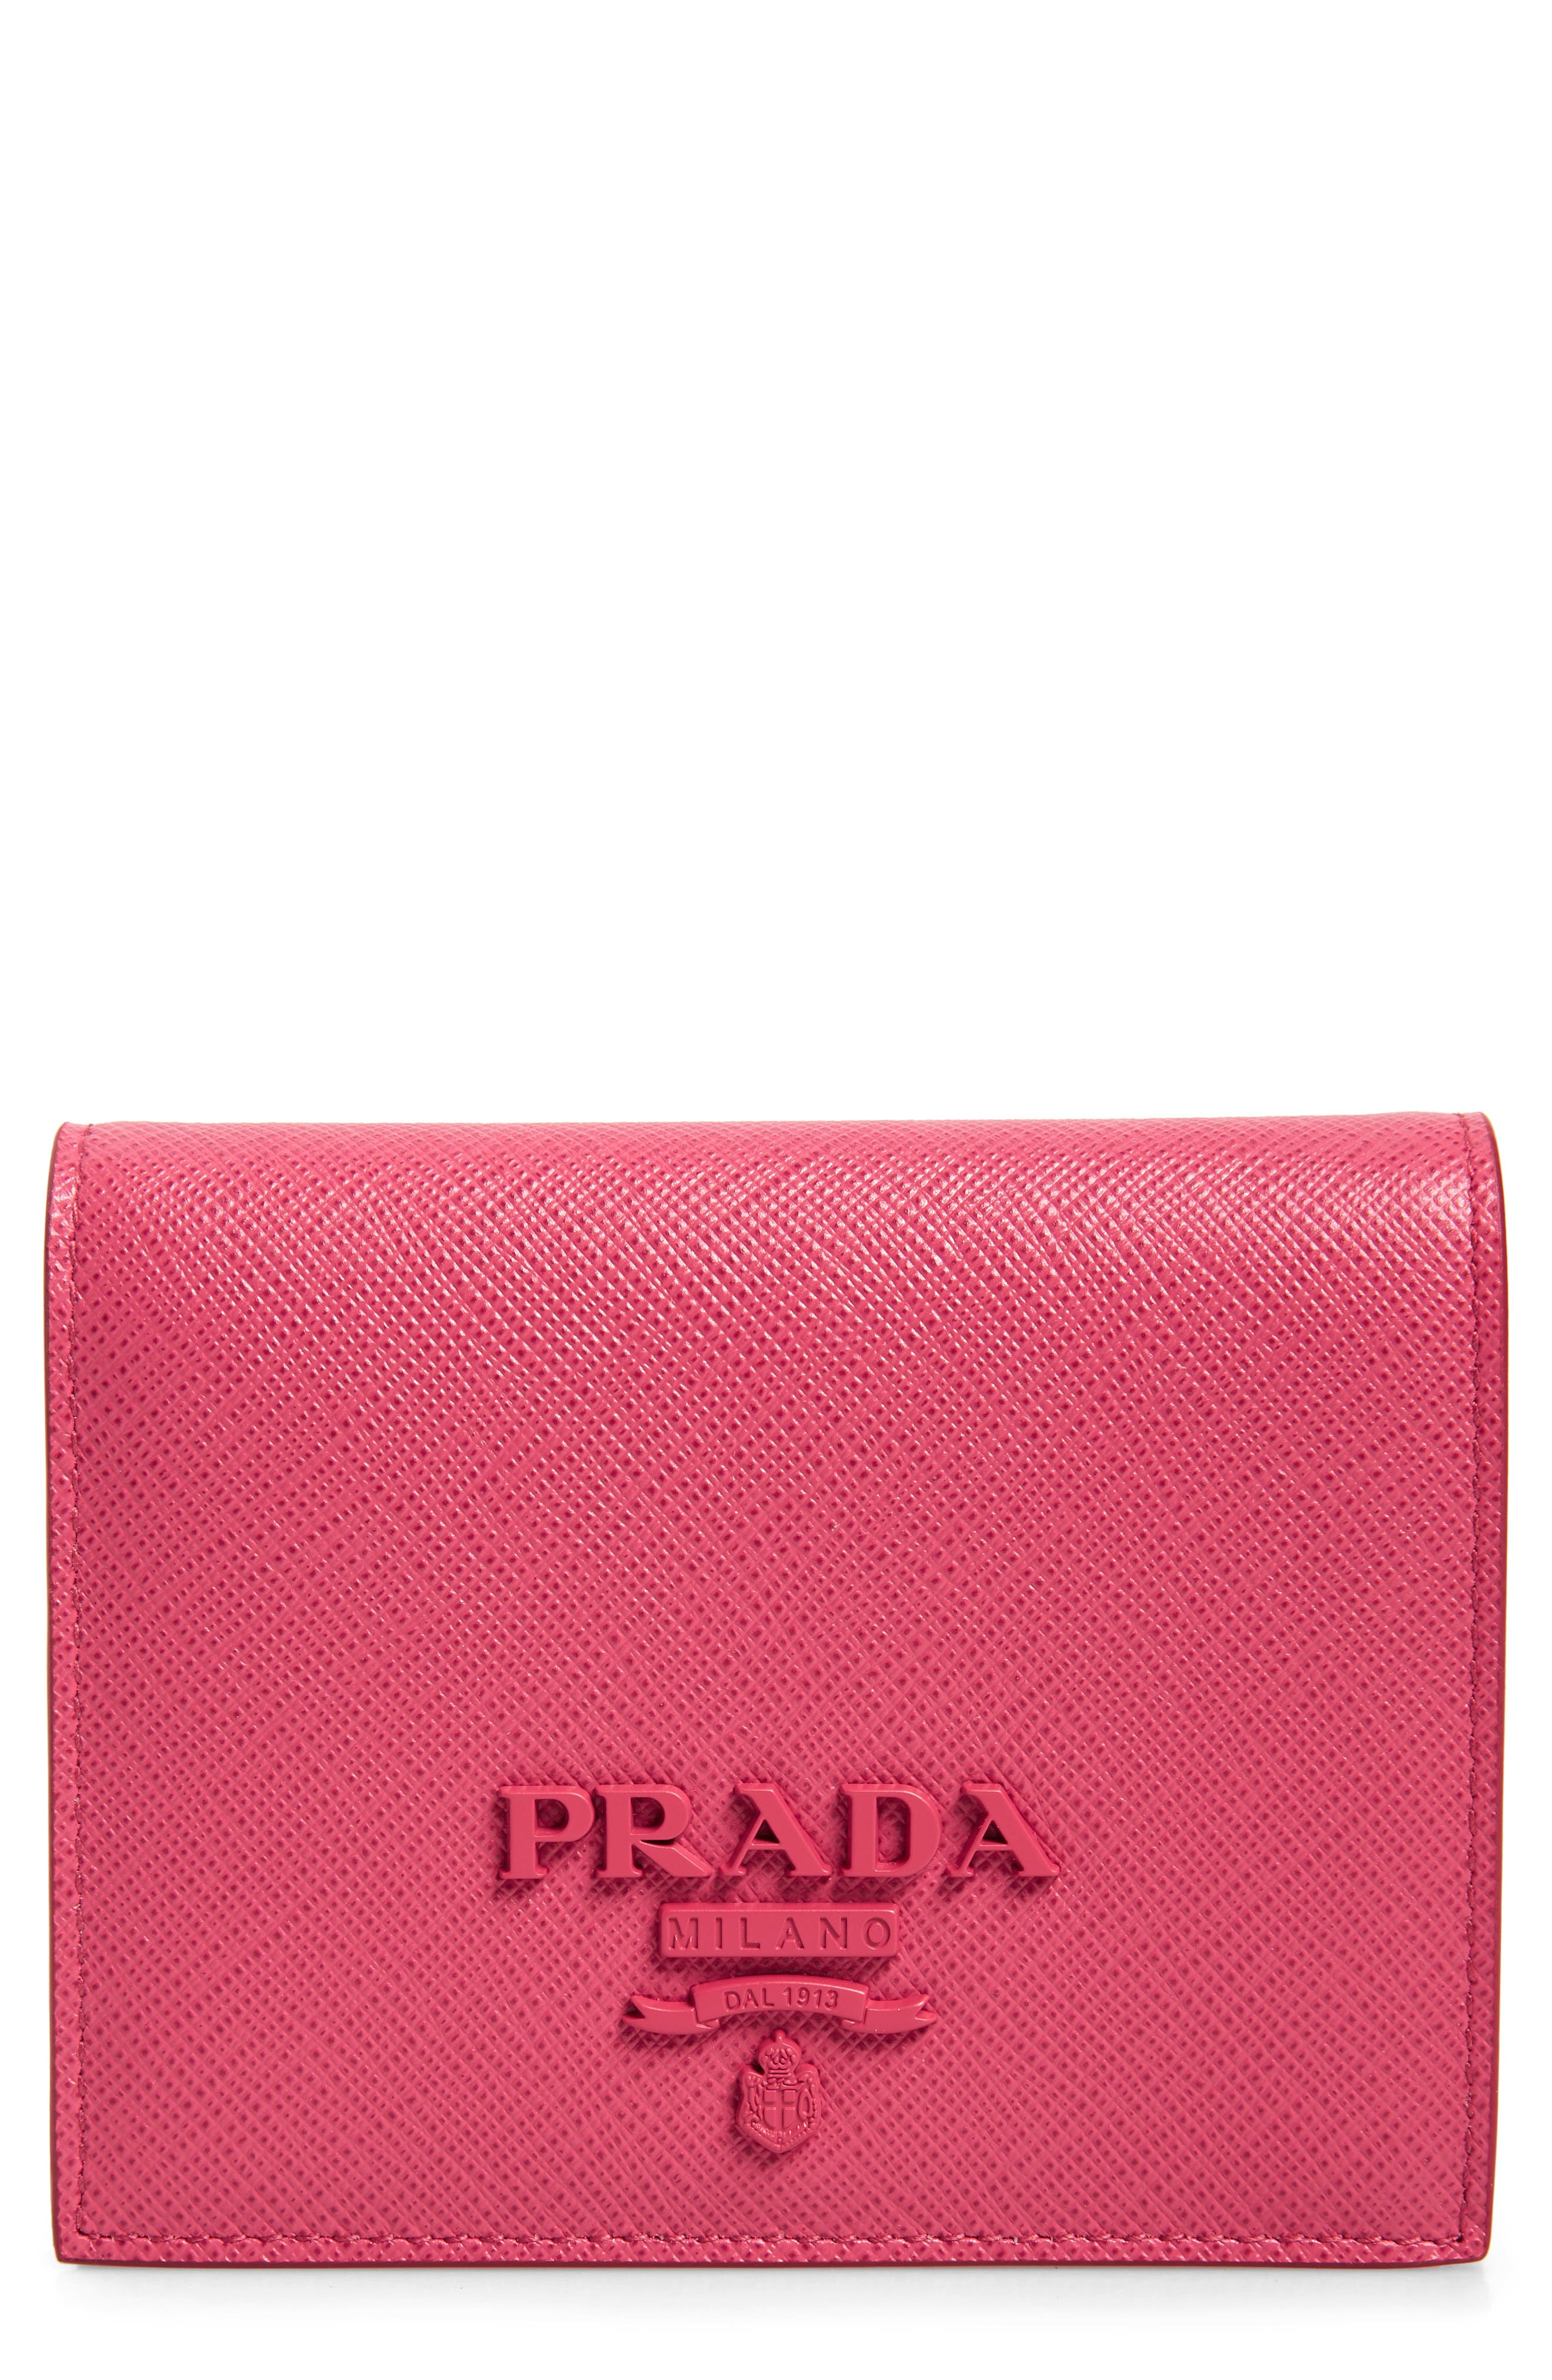 1410a9b23863 Prada Wallets & Card Cases for Women | Nordstrom